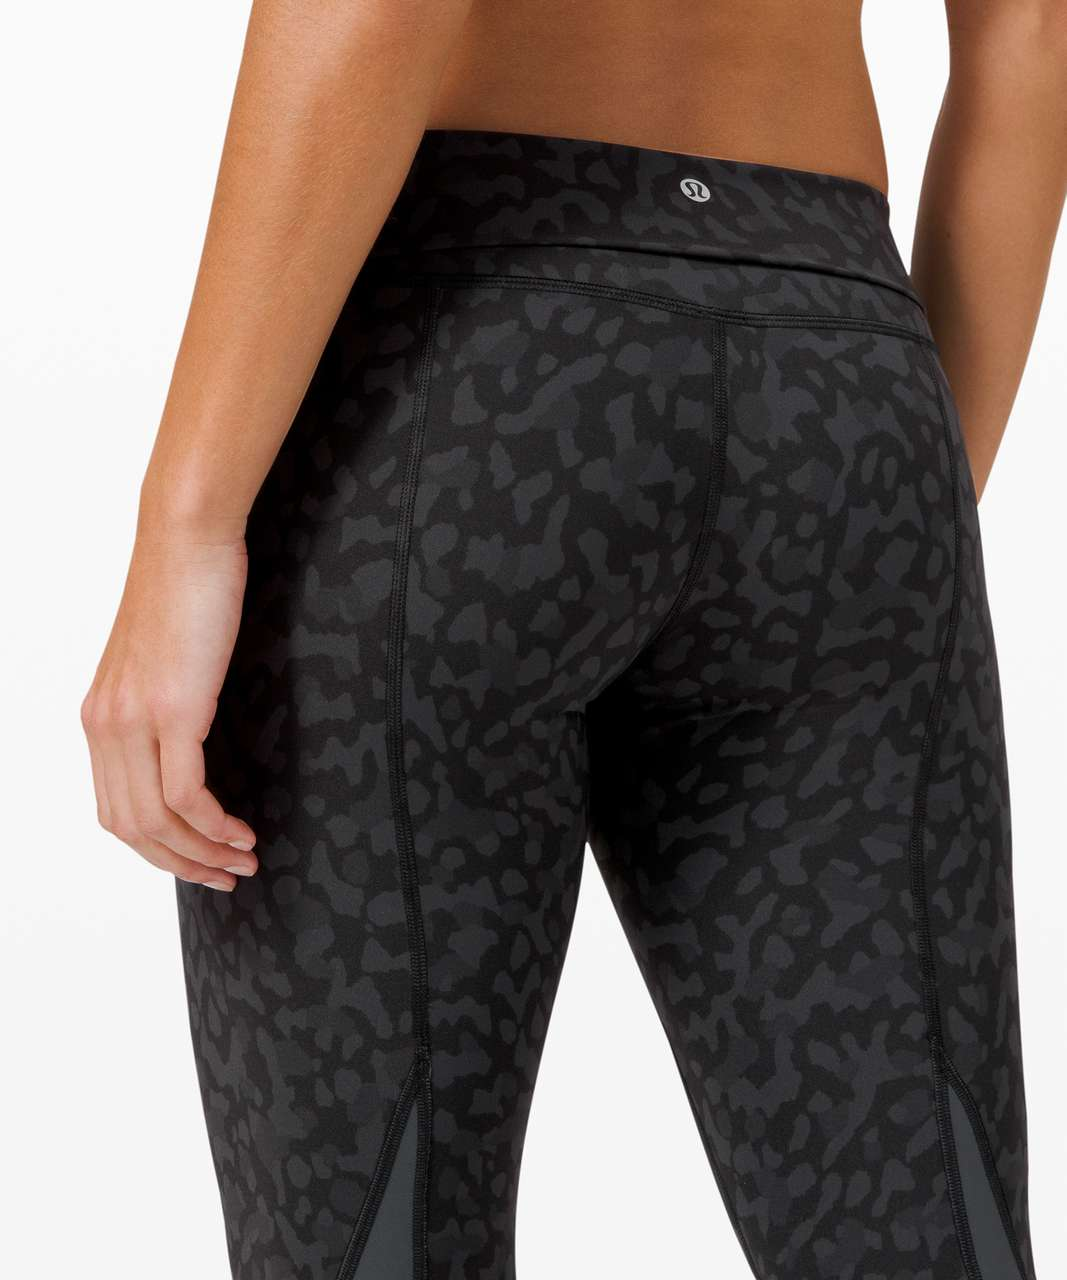 "Lululemon Wunder Under Crop High-Rise *Roll Down Scallop Full-On Luxtreme 23"" - Formation Camo Deep Coal Multi  / Deep Coal"